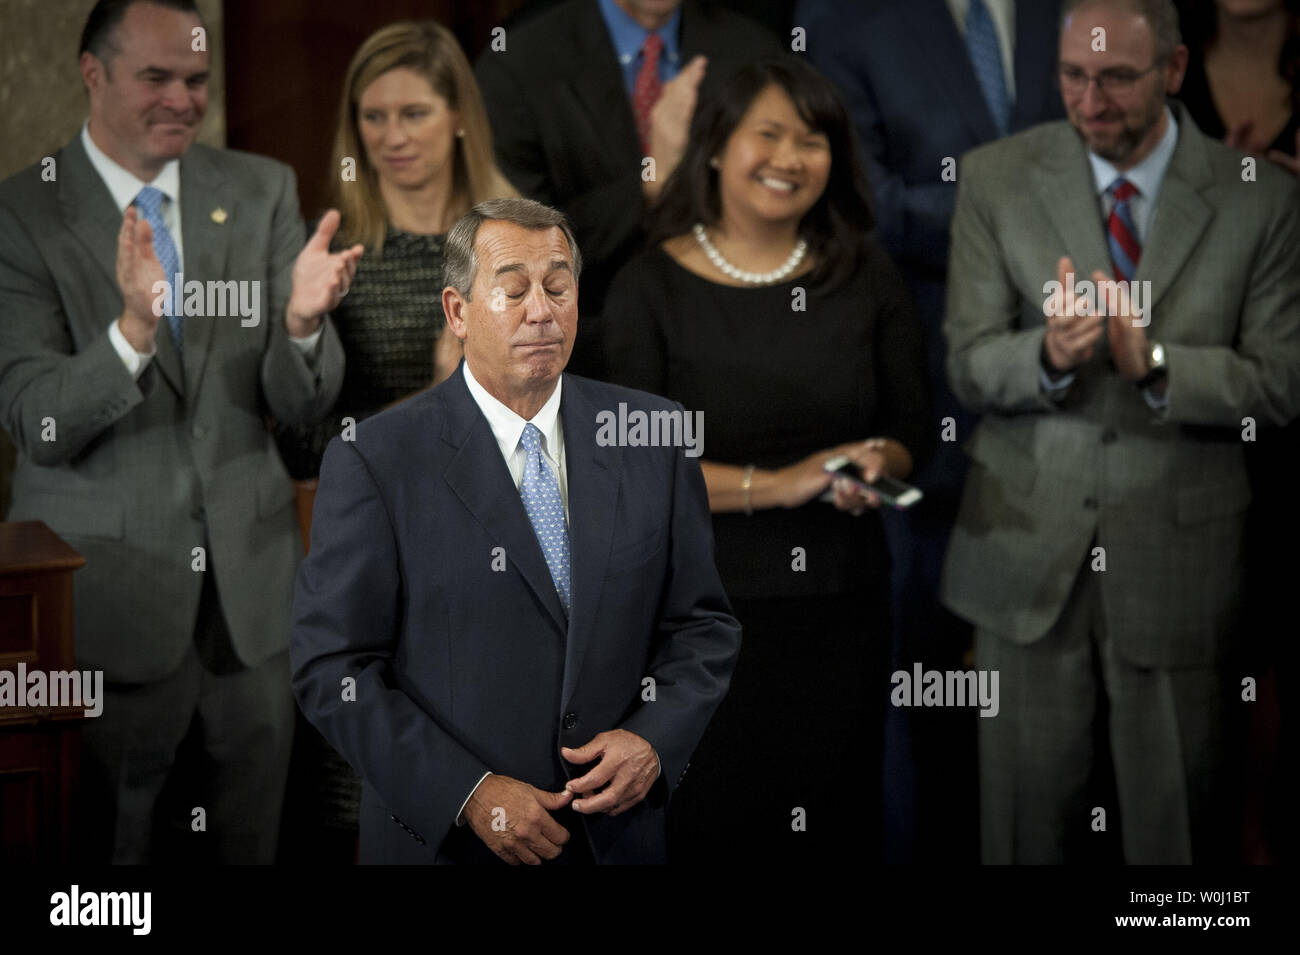 The day before he is to retire from Congress, Speaker of the House John Boehner (R-OH) becomes emotional after delivering his farewell address to the House of Representatives on October 29, 2015 in Washington, D.C. Following his address, the House of Representatives will vote on Boehner's replacement for Speaker. Photo by Pete Marovich/UPI - Stock Image